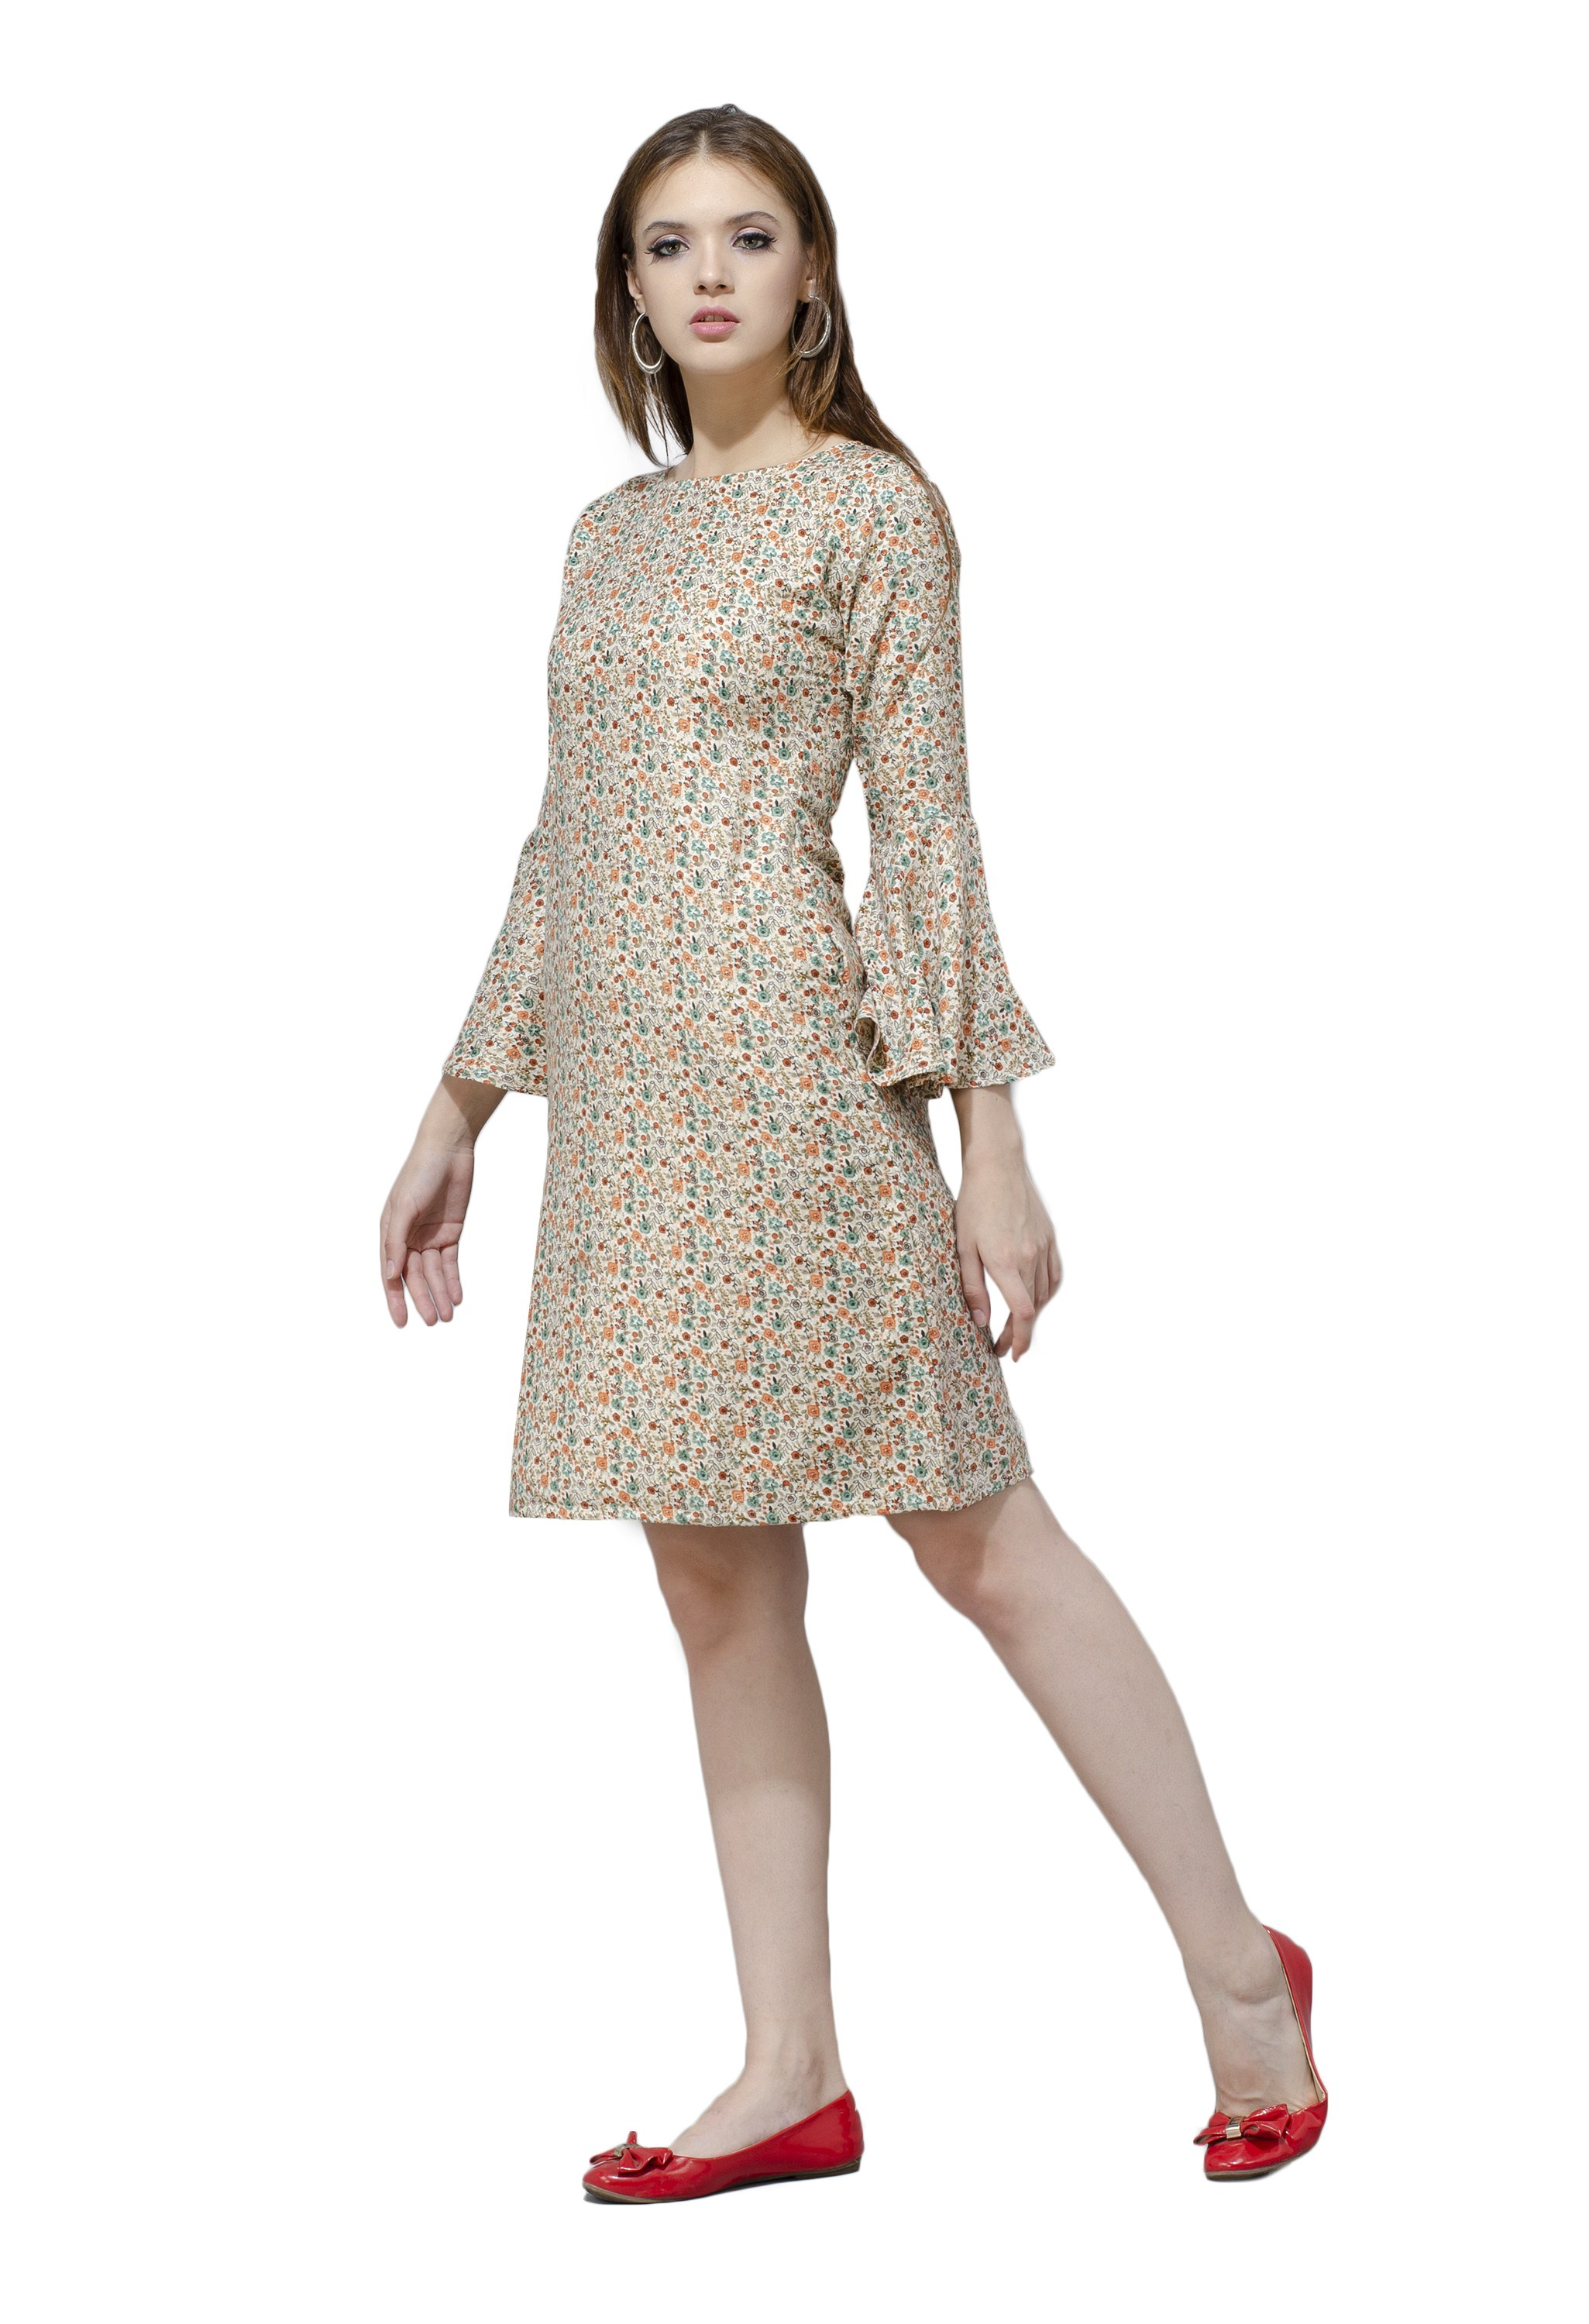 Pashmina Cashmere Dress from Grab Your Garb